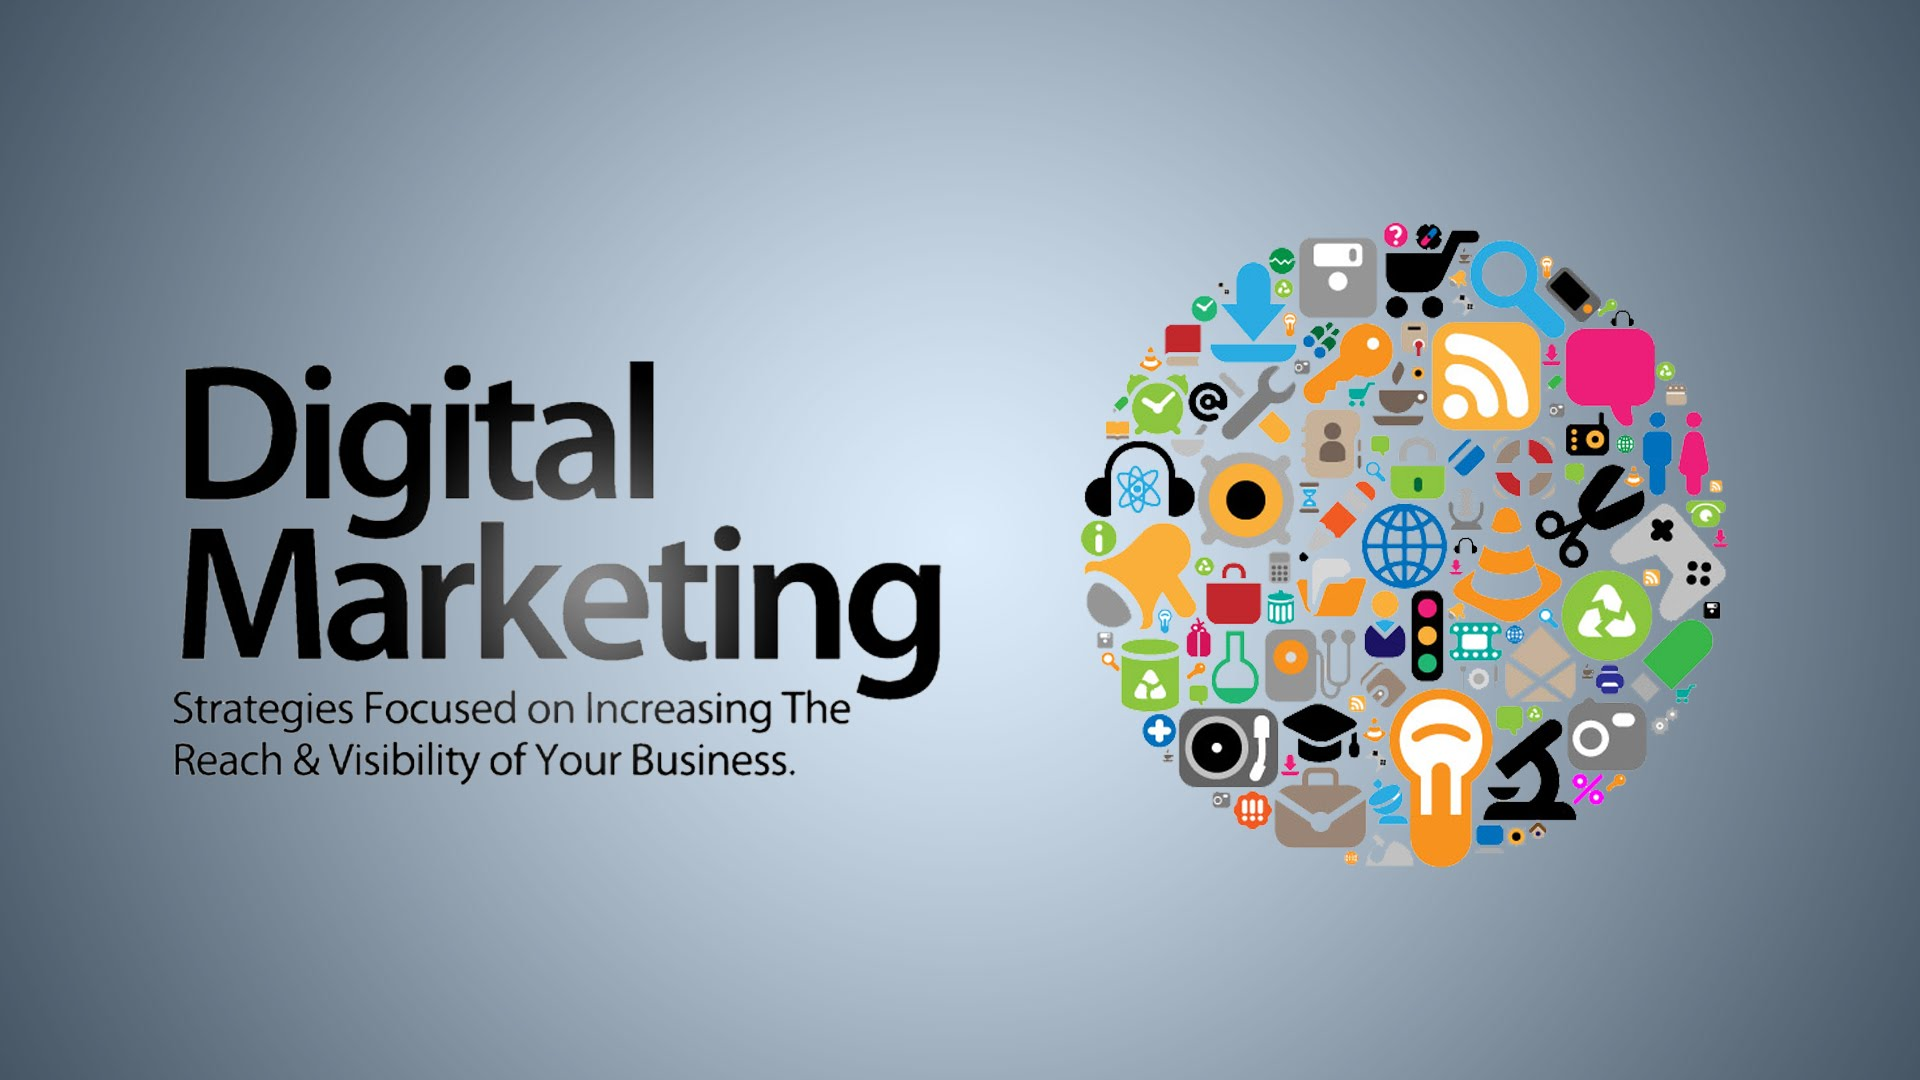 Digital Marketing Benefits for Your Small Business Grow